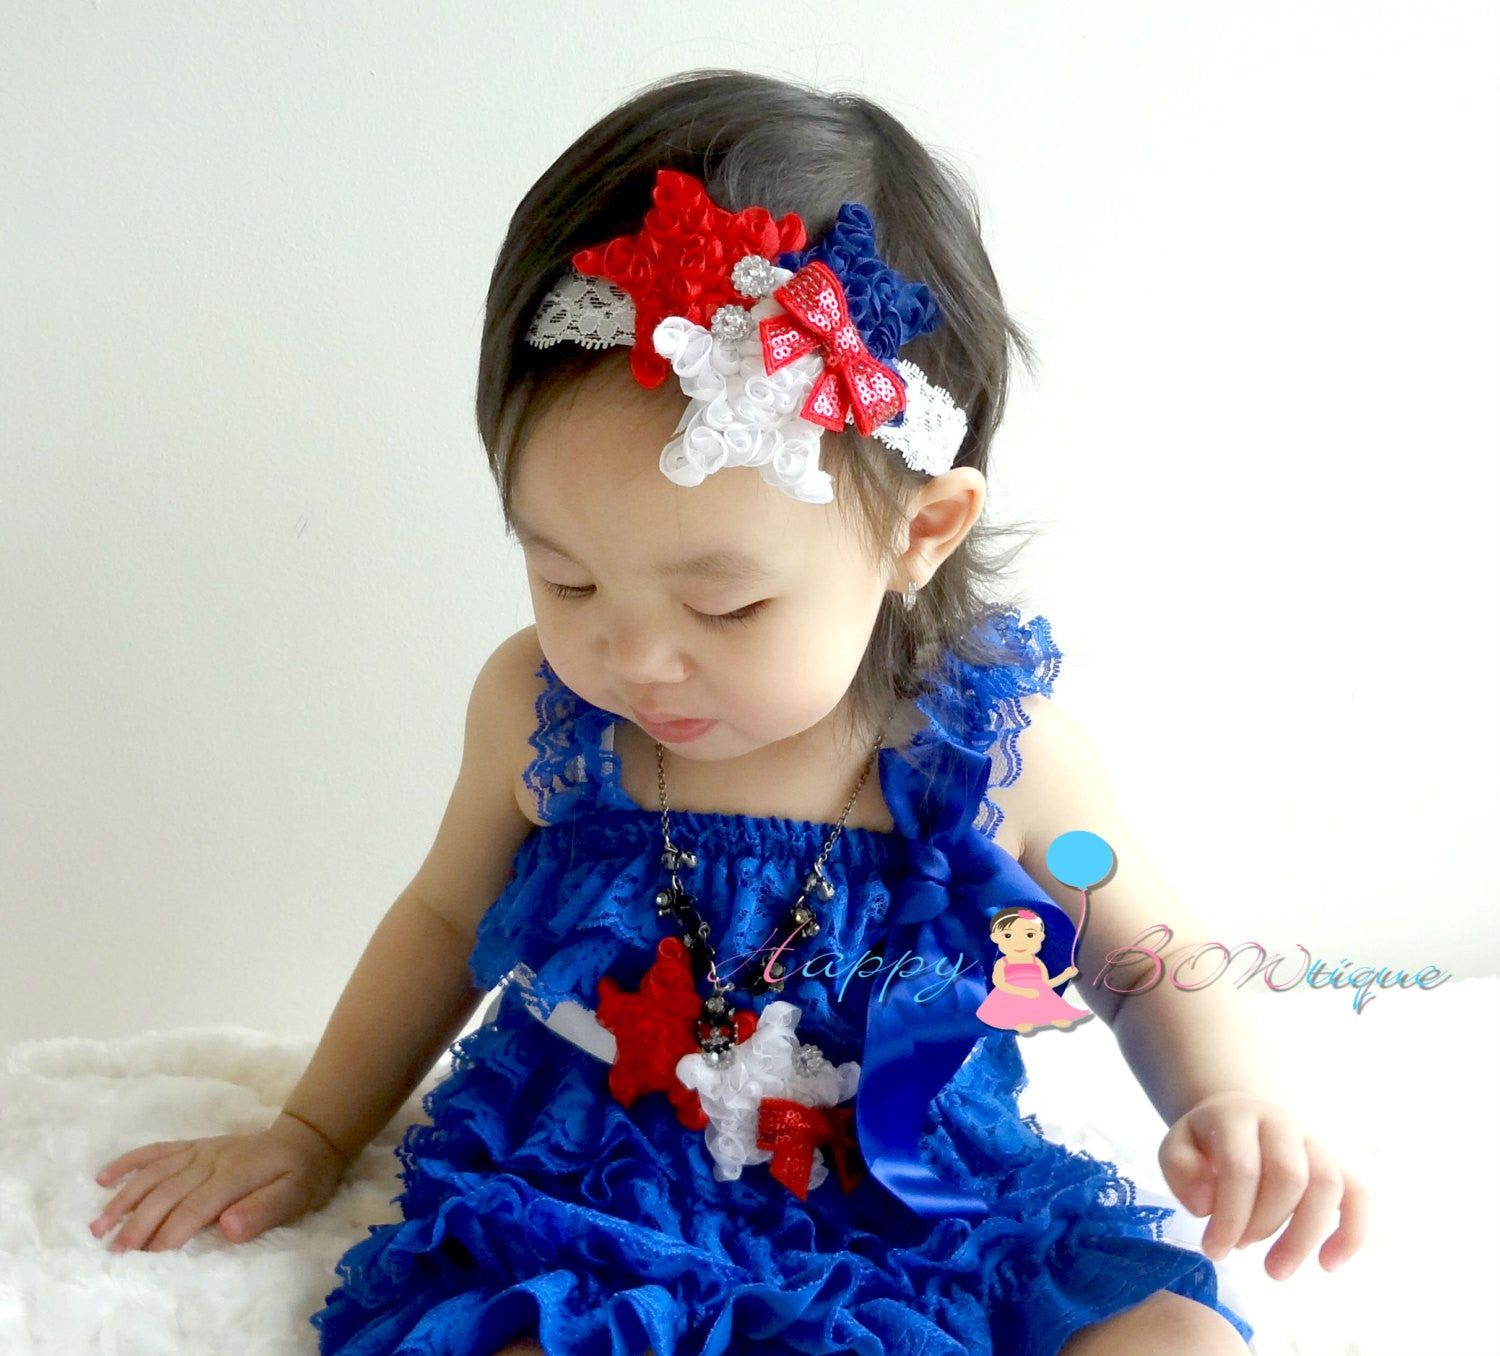 3pcs Shabby Stars dress set, 4th of July Dress, Petti Lace Dress, baby dress, girls dress, USA, Birthday outfit, baby dress - Happy BOWtique - children's clothing, Baby Girl clothing